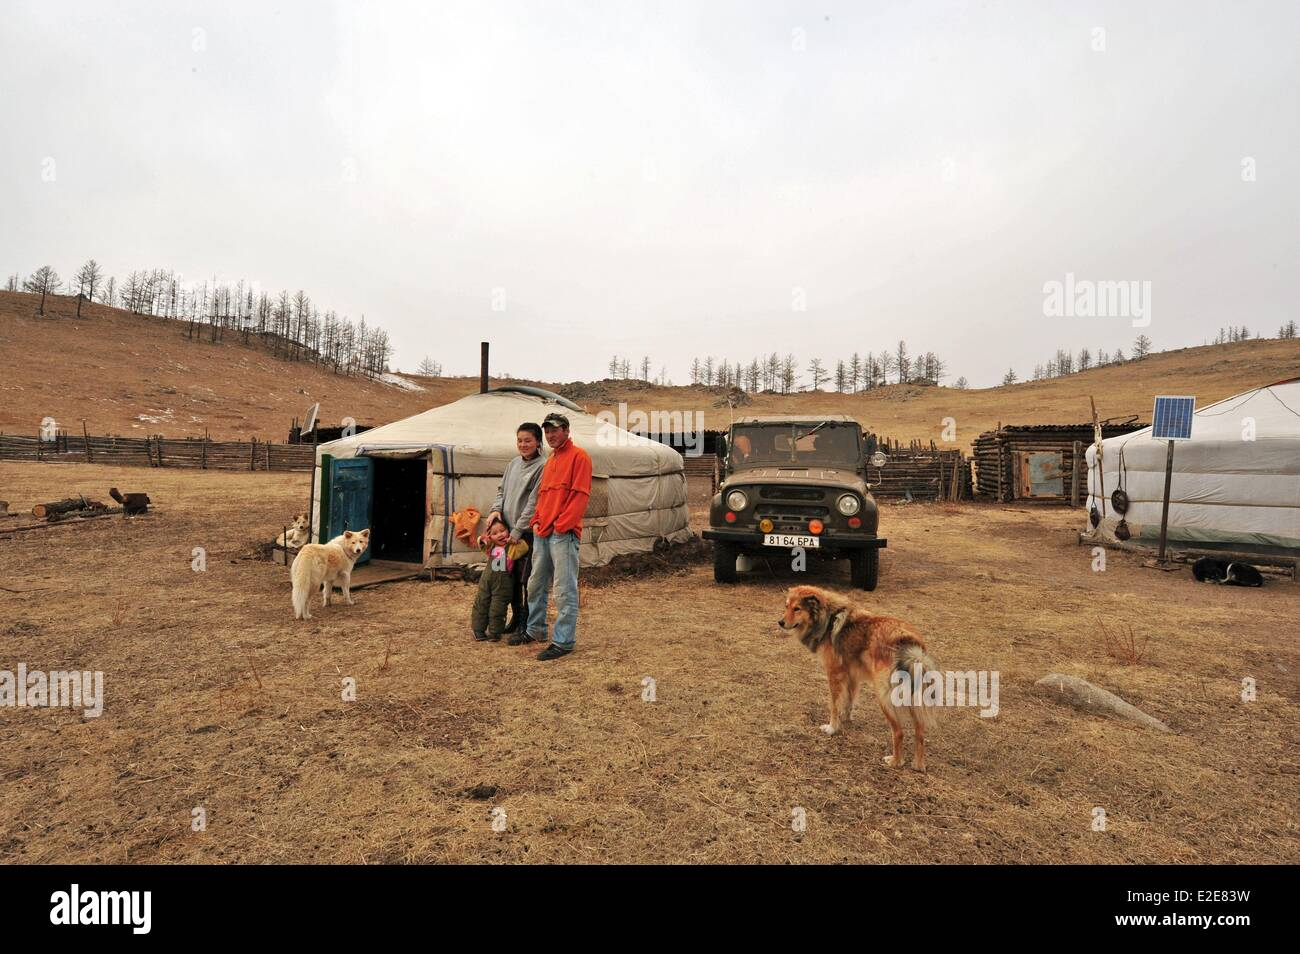 Mongolia, Tov province, Baganuur, man and woman with daughter standing in front of a yurt by vehicle - Stock Image